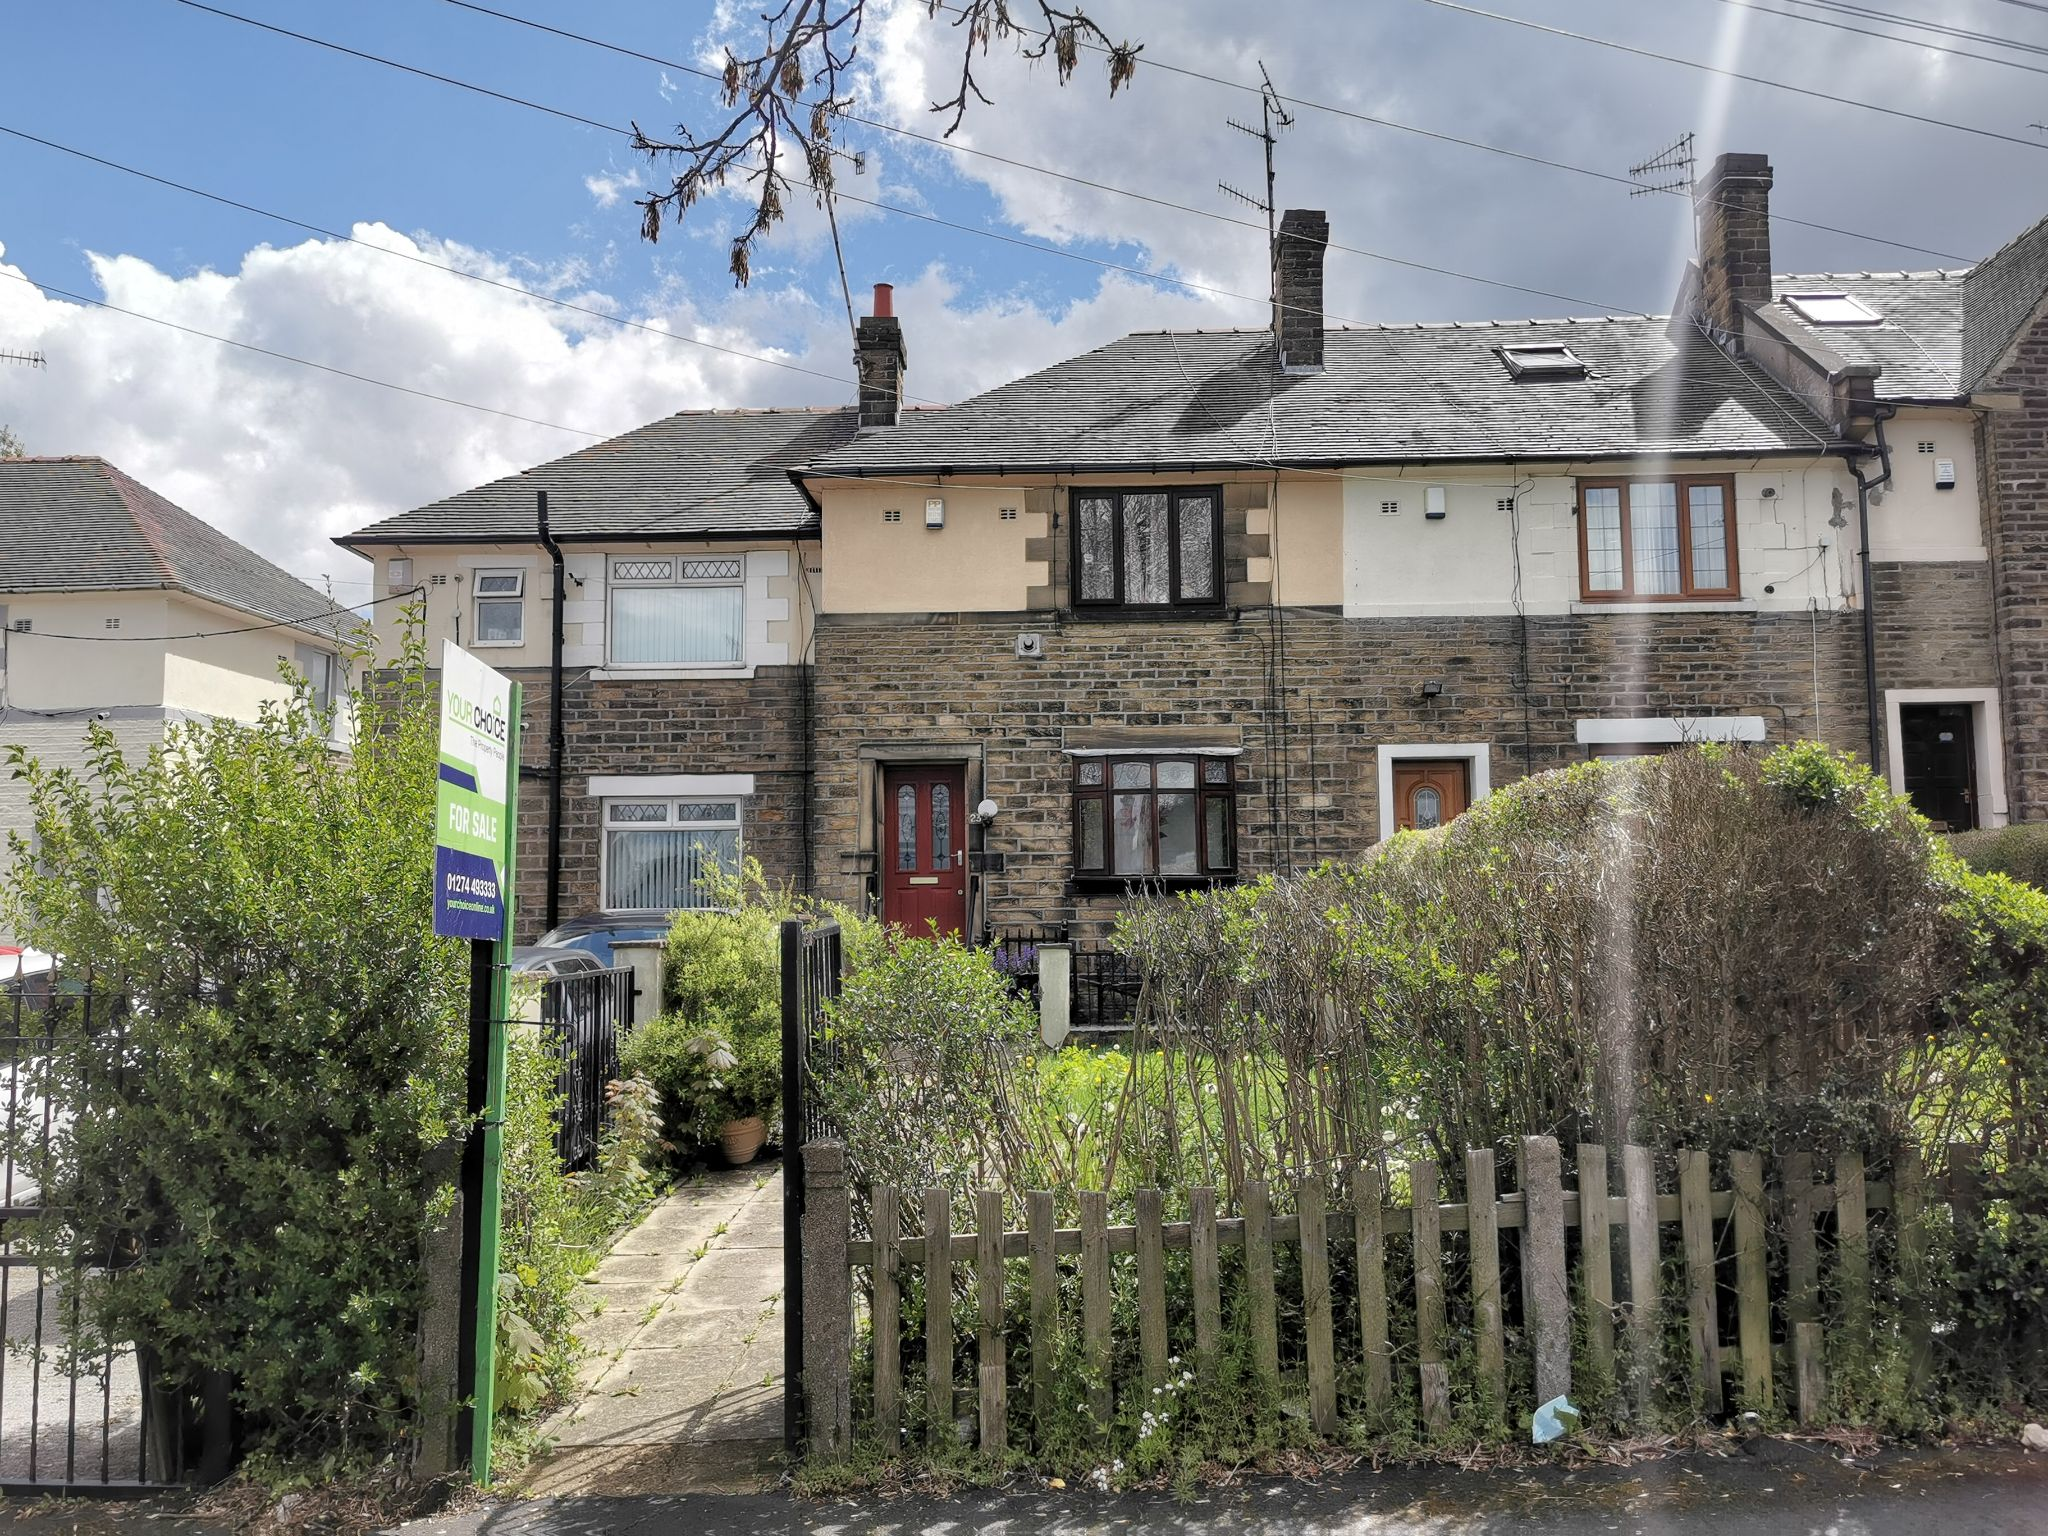 2 bedroom mid terraced house For Sale in Bradford - Photograph 1.